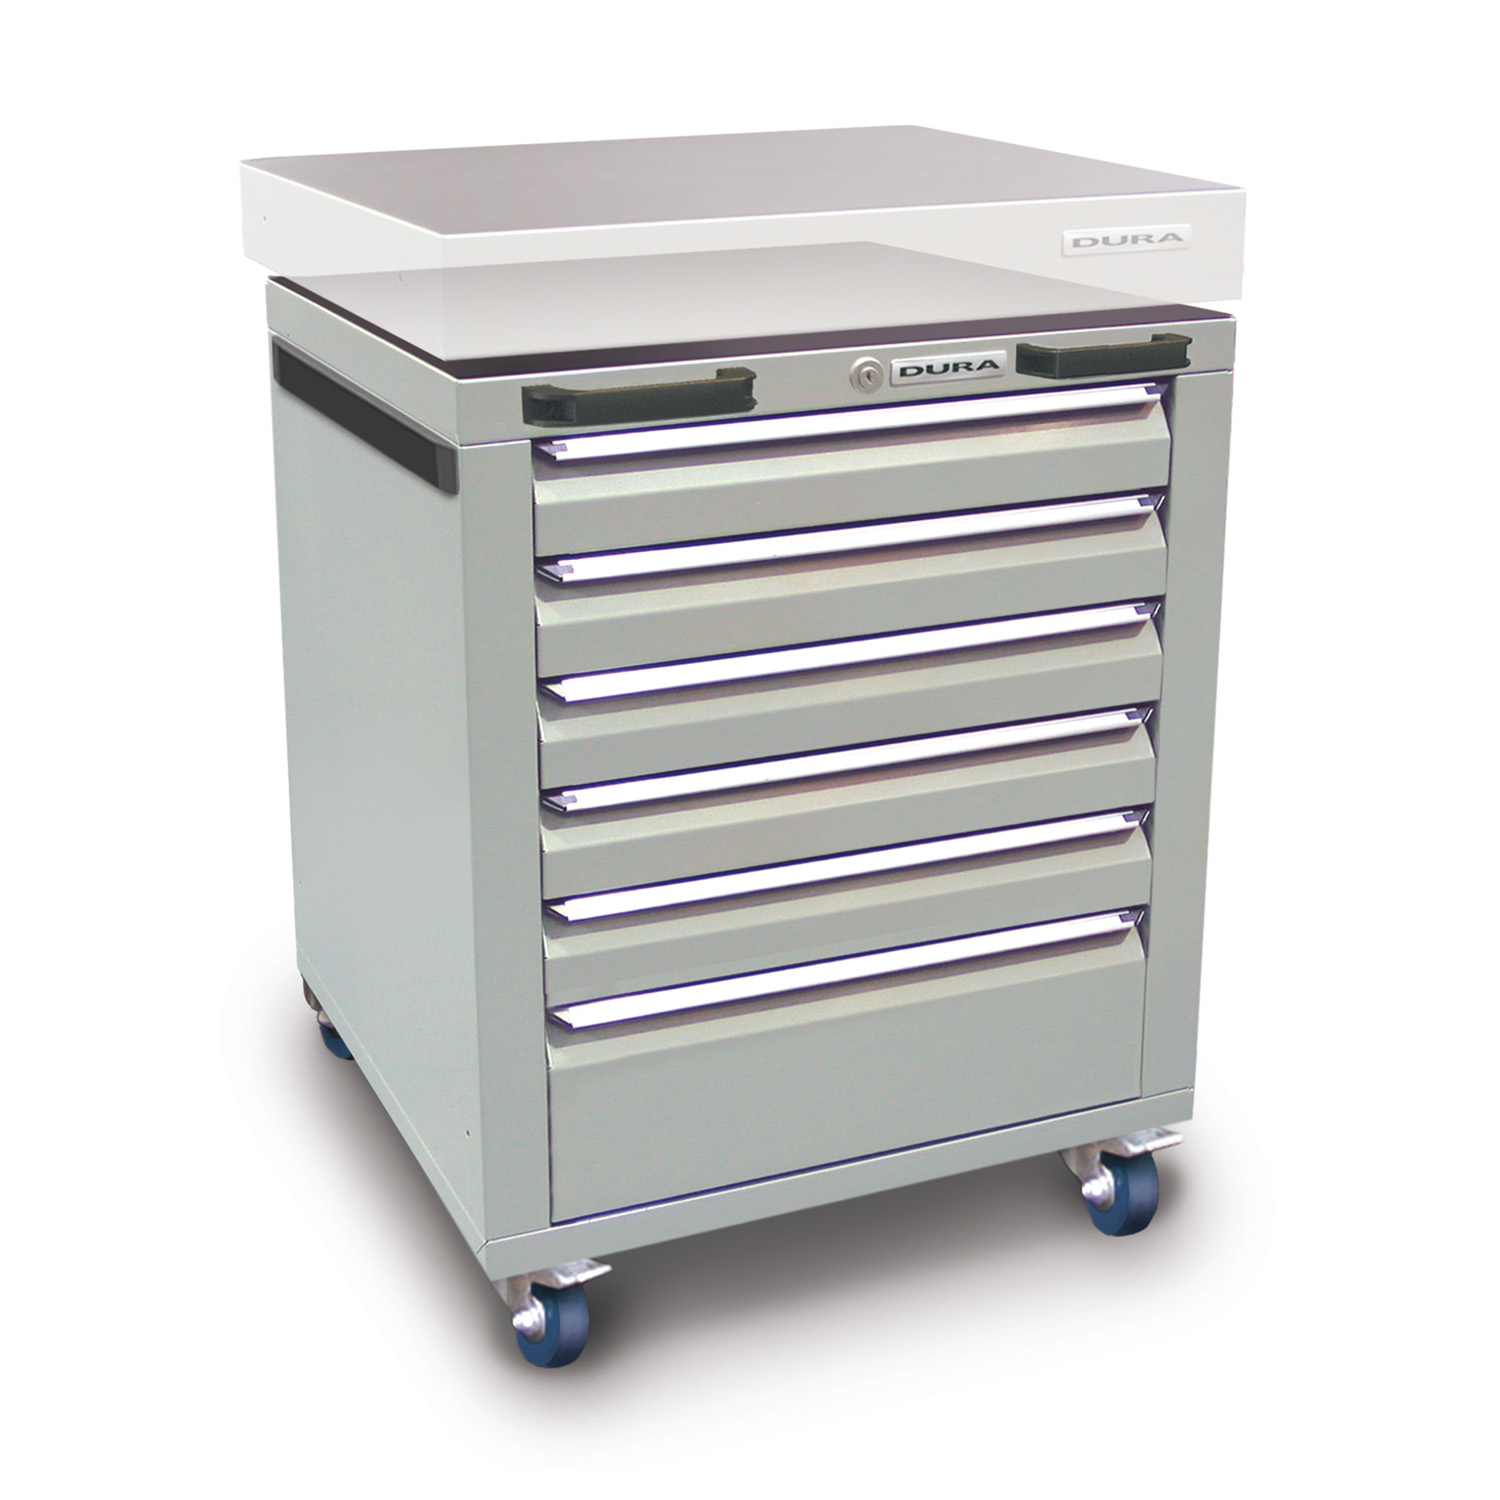 560mm Under-bench cabinet (6 drawers)